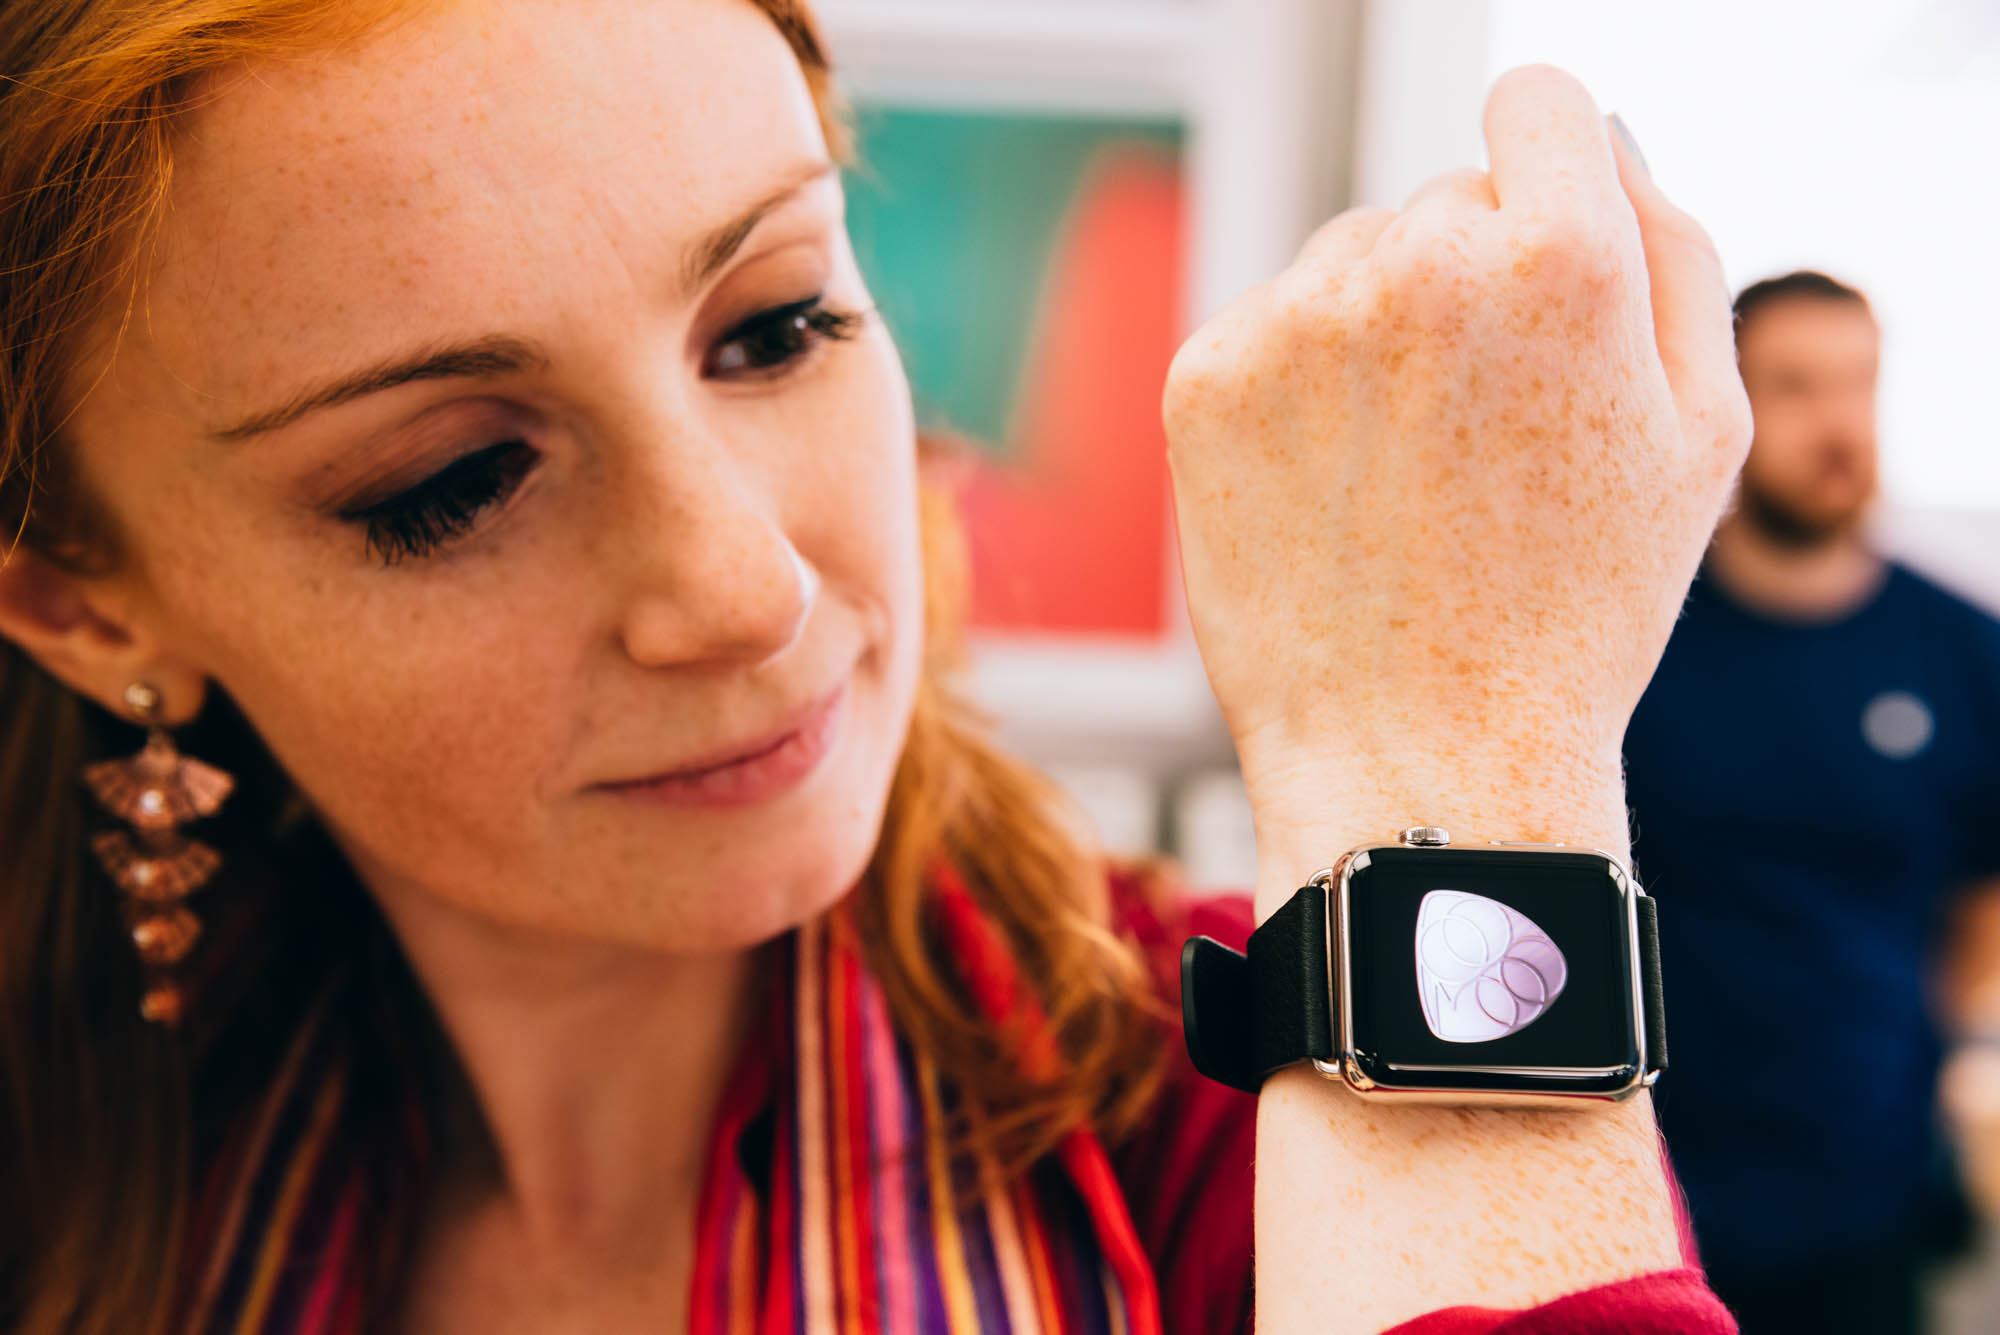 A new Apple Watch on the wrist of a redhead